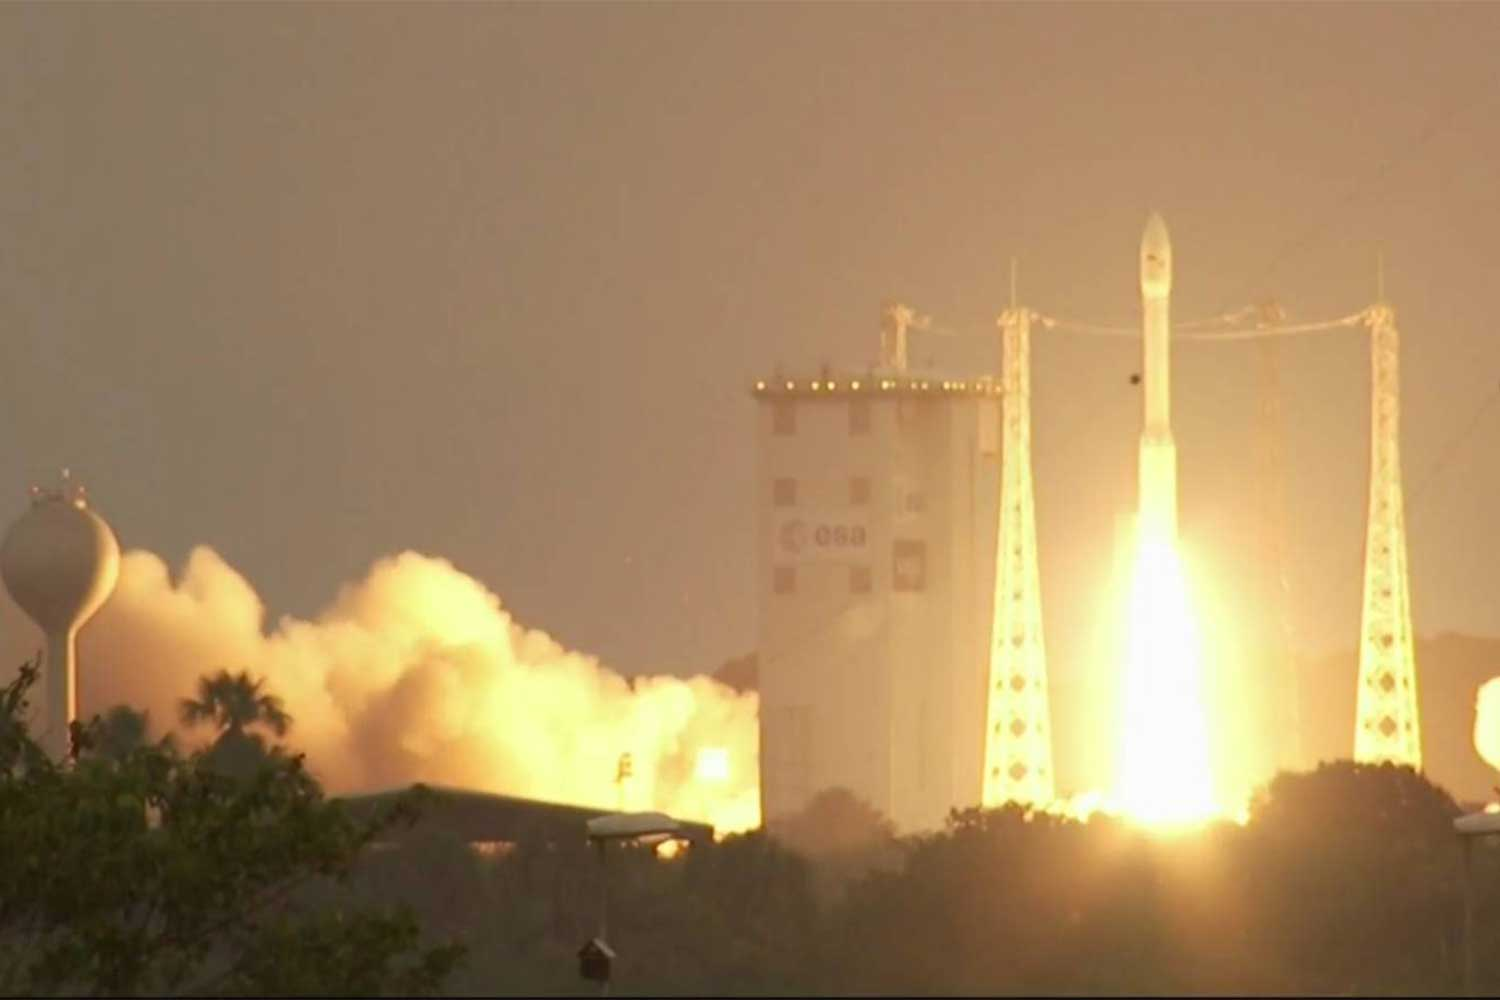 An Arianspace Vega rocket launches from French Guiana at 8.51am Bangkok time on Thursday, carryng Napa-1, the RTAF's first security satellite, and 52 other satellites into orbit. (Photo supplied)